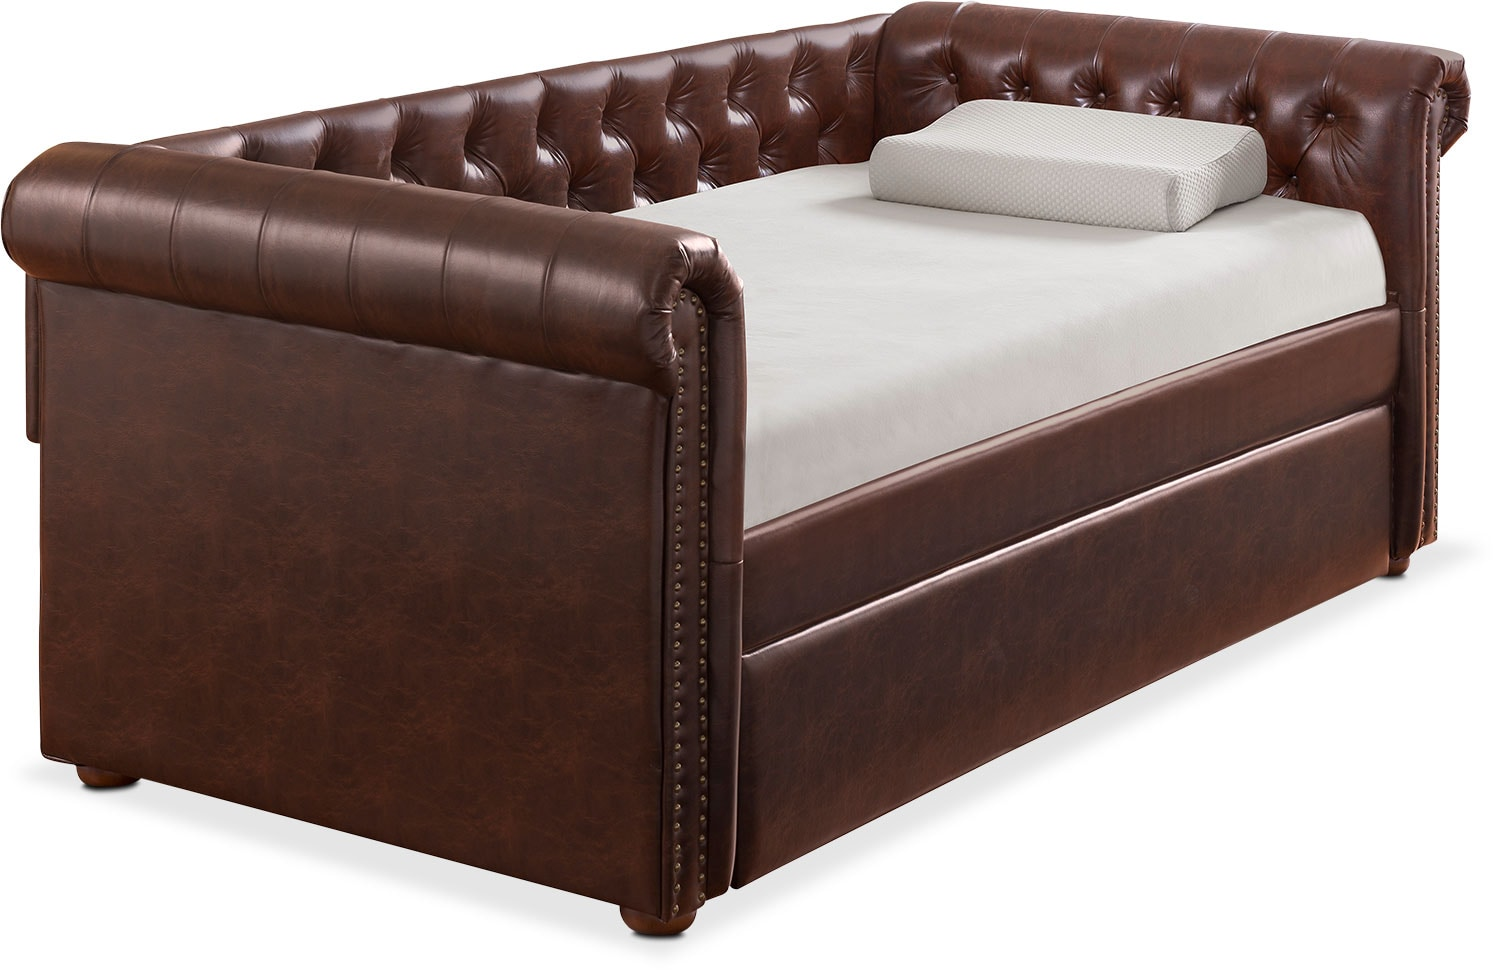 Kids Furniture   Shelton Twin Upholstered Daybed With Trundle   Brown